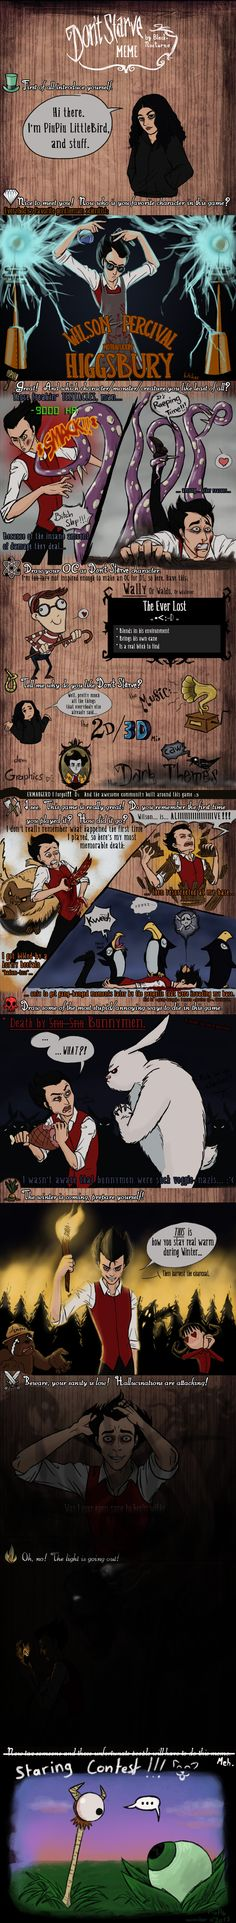 Don't Starve Meme by PiuPiu-Littlebird on DeviantArt